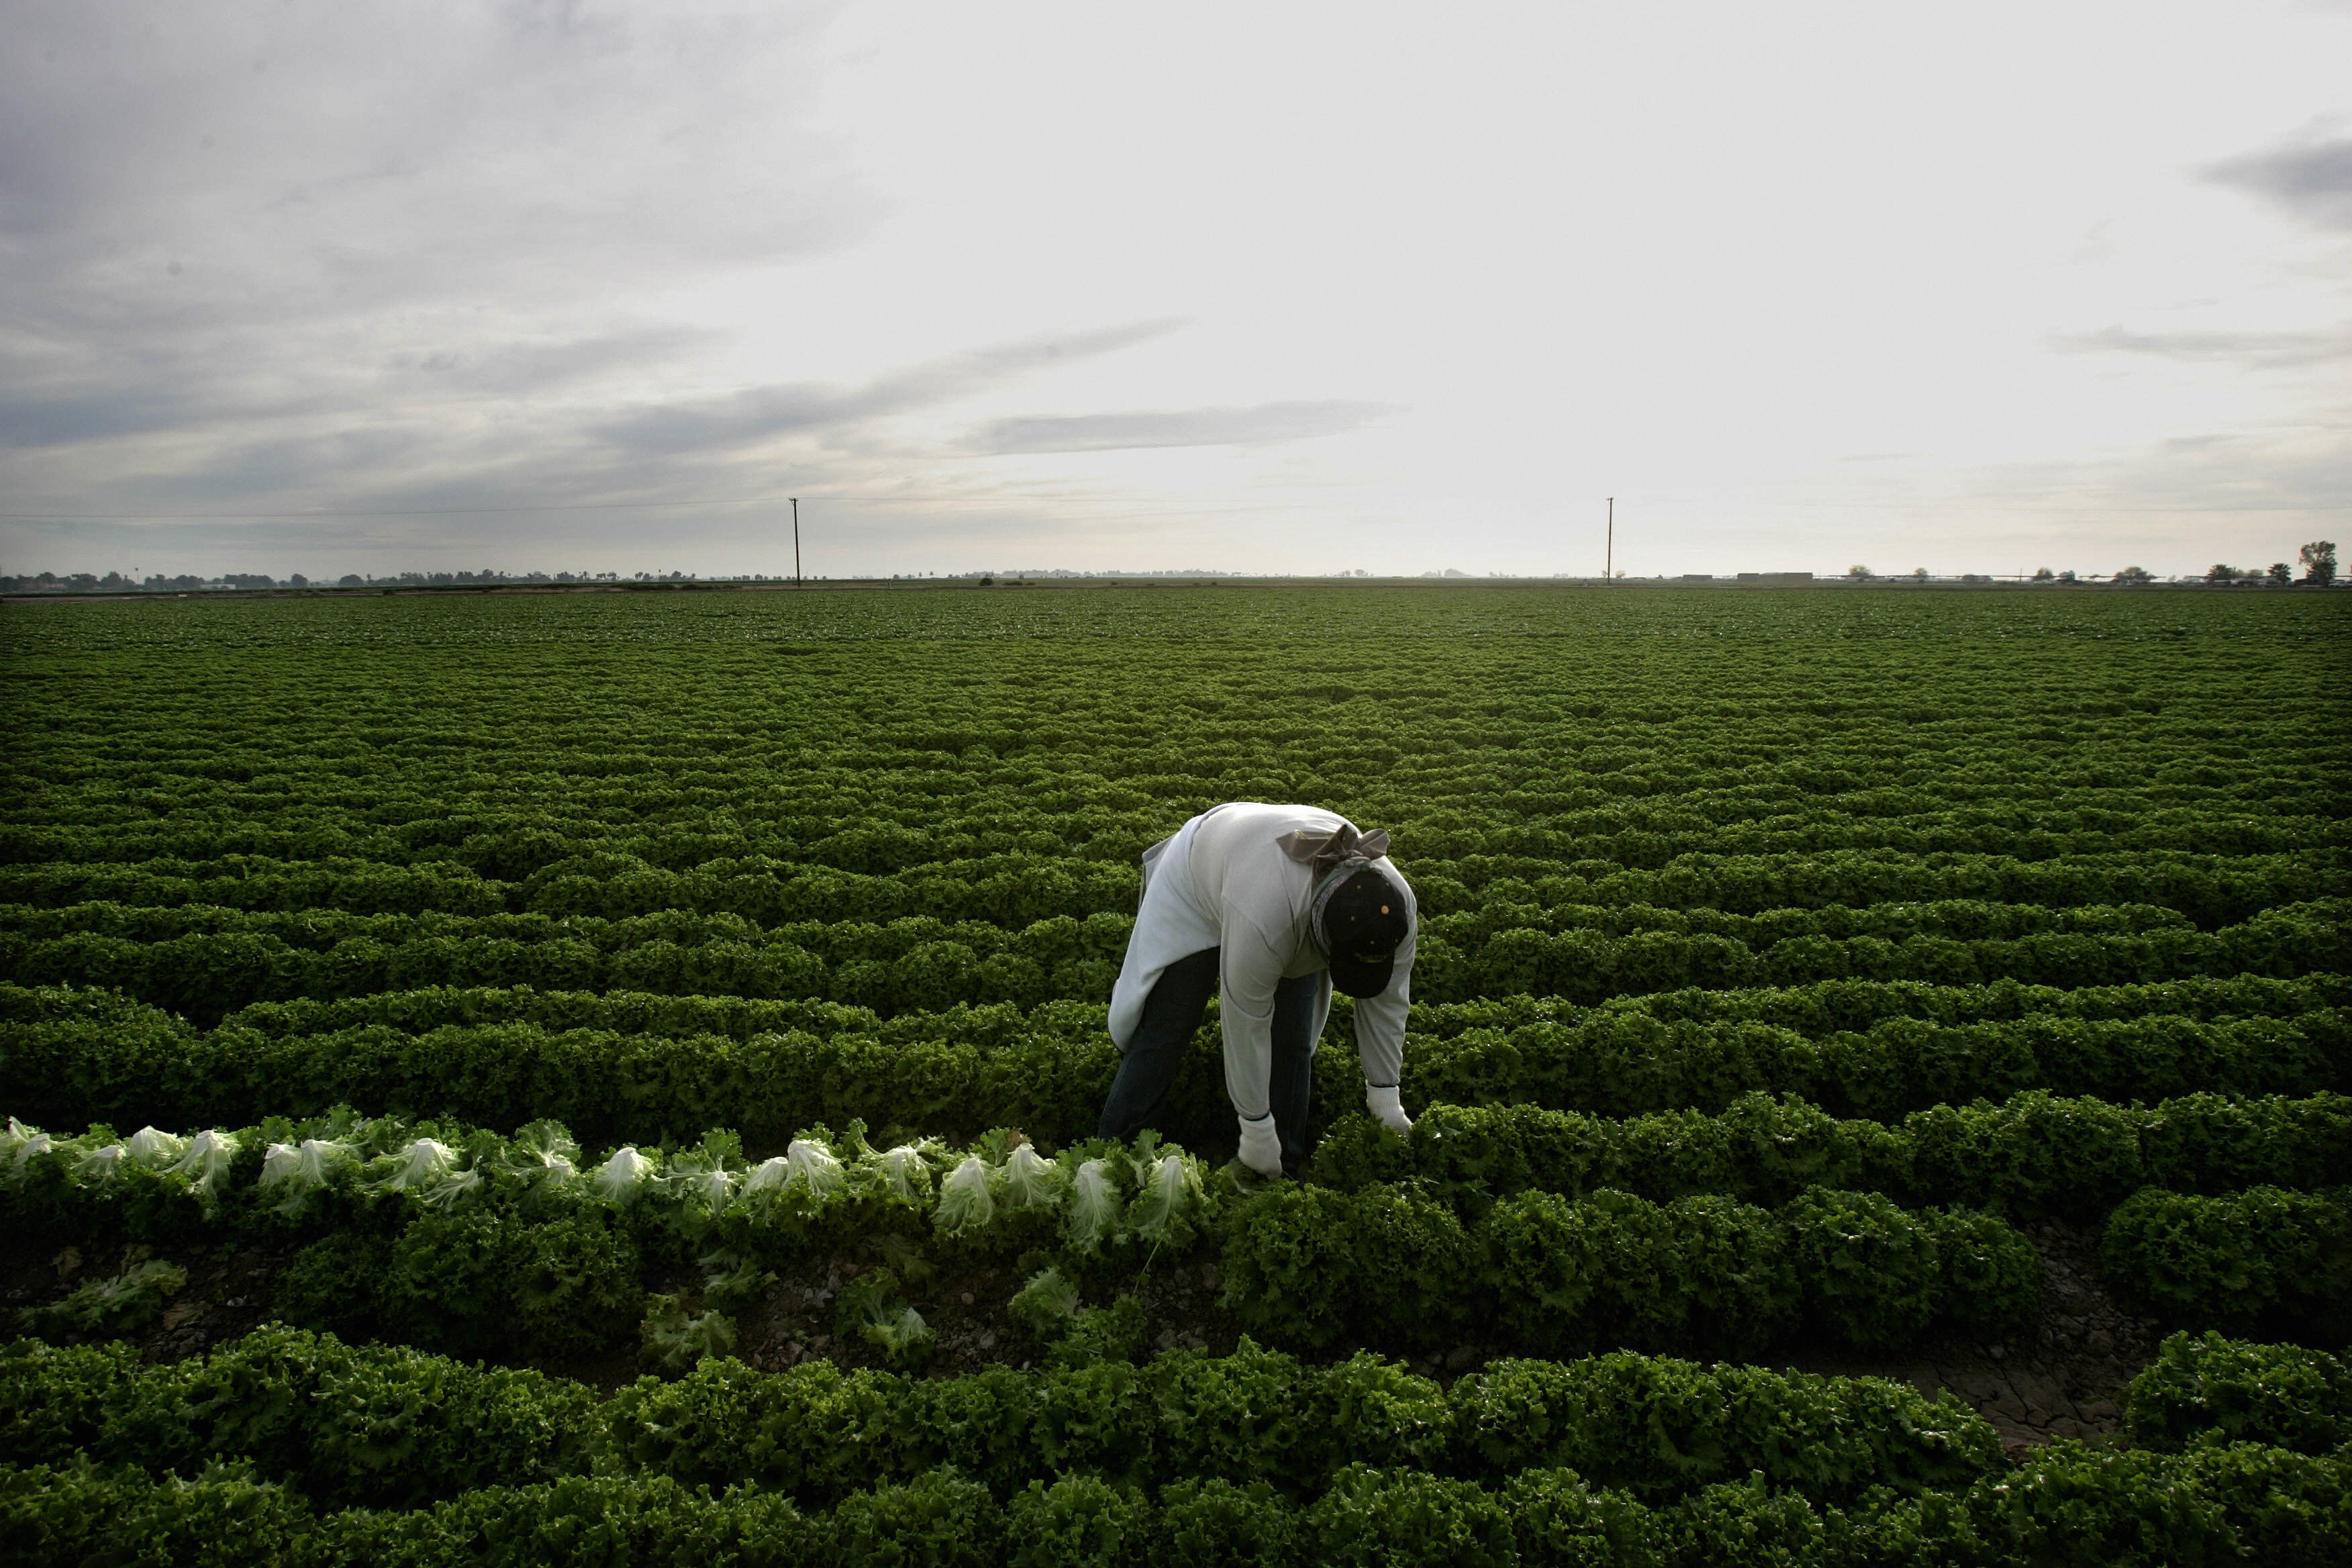 A farm worker harvests lettuce in a green field.